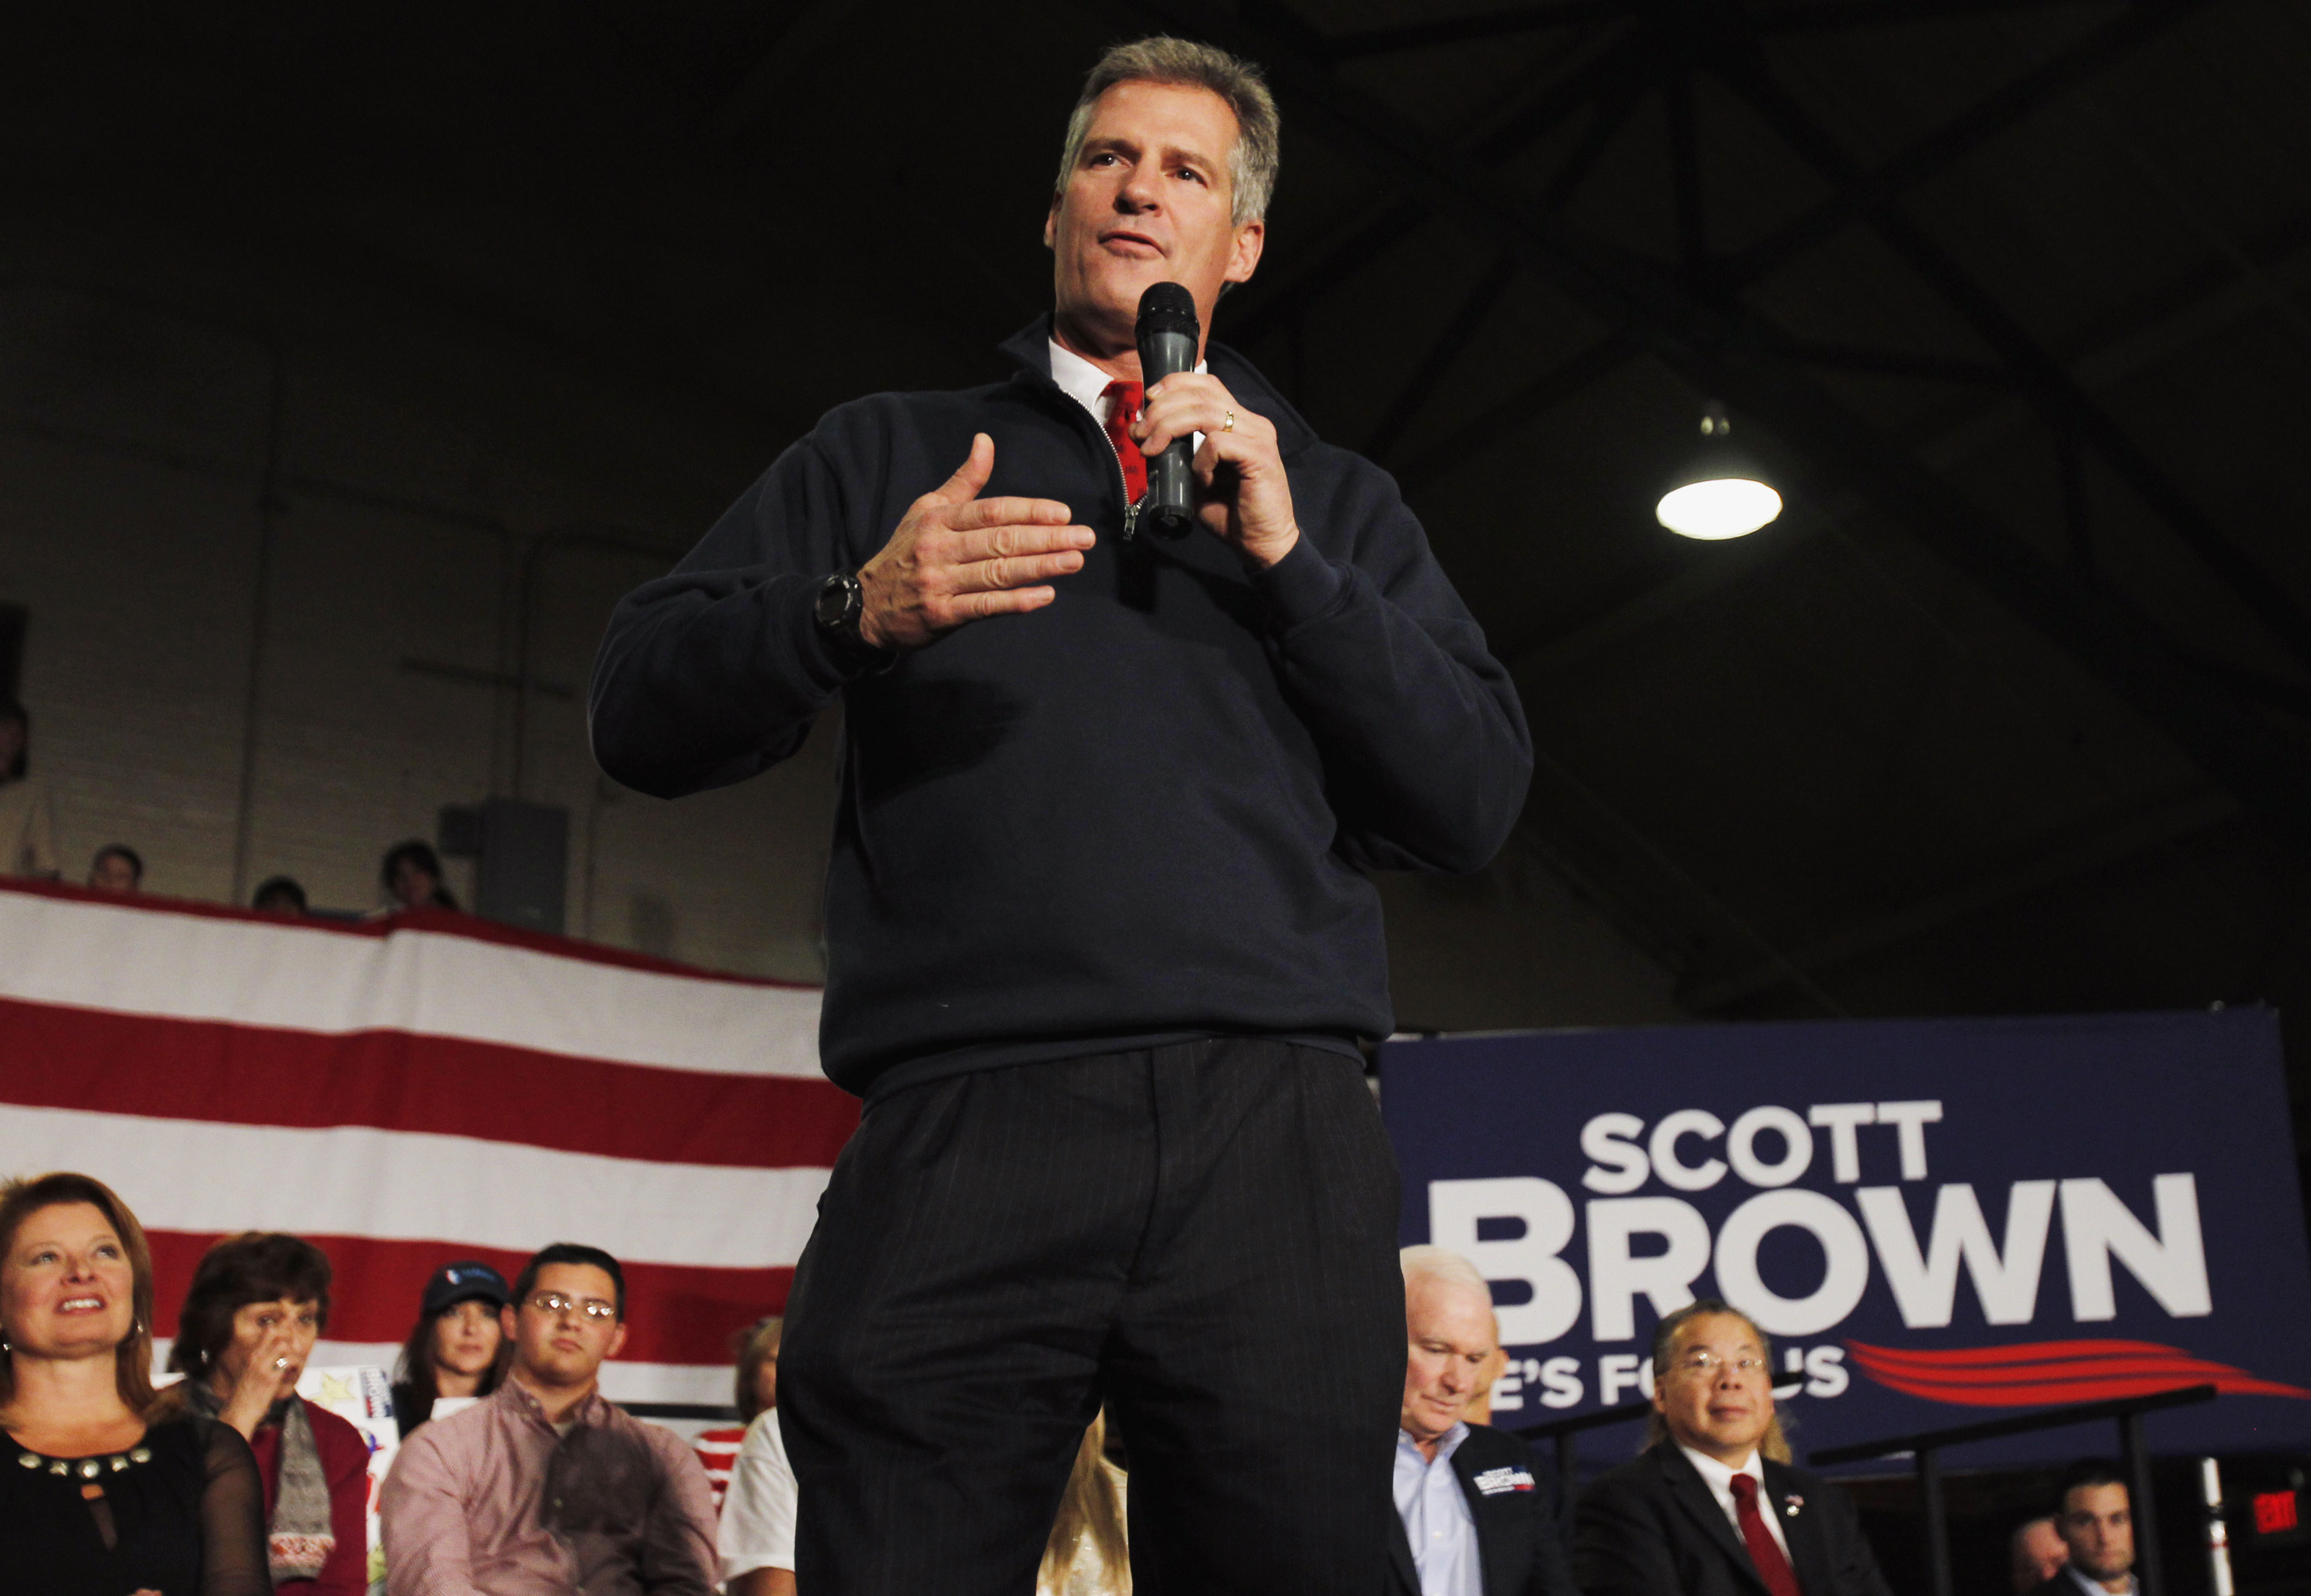 Senator Scott Brown. ©REUTERS